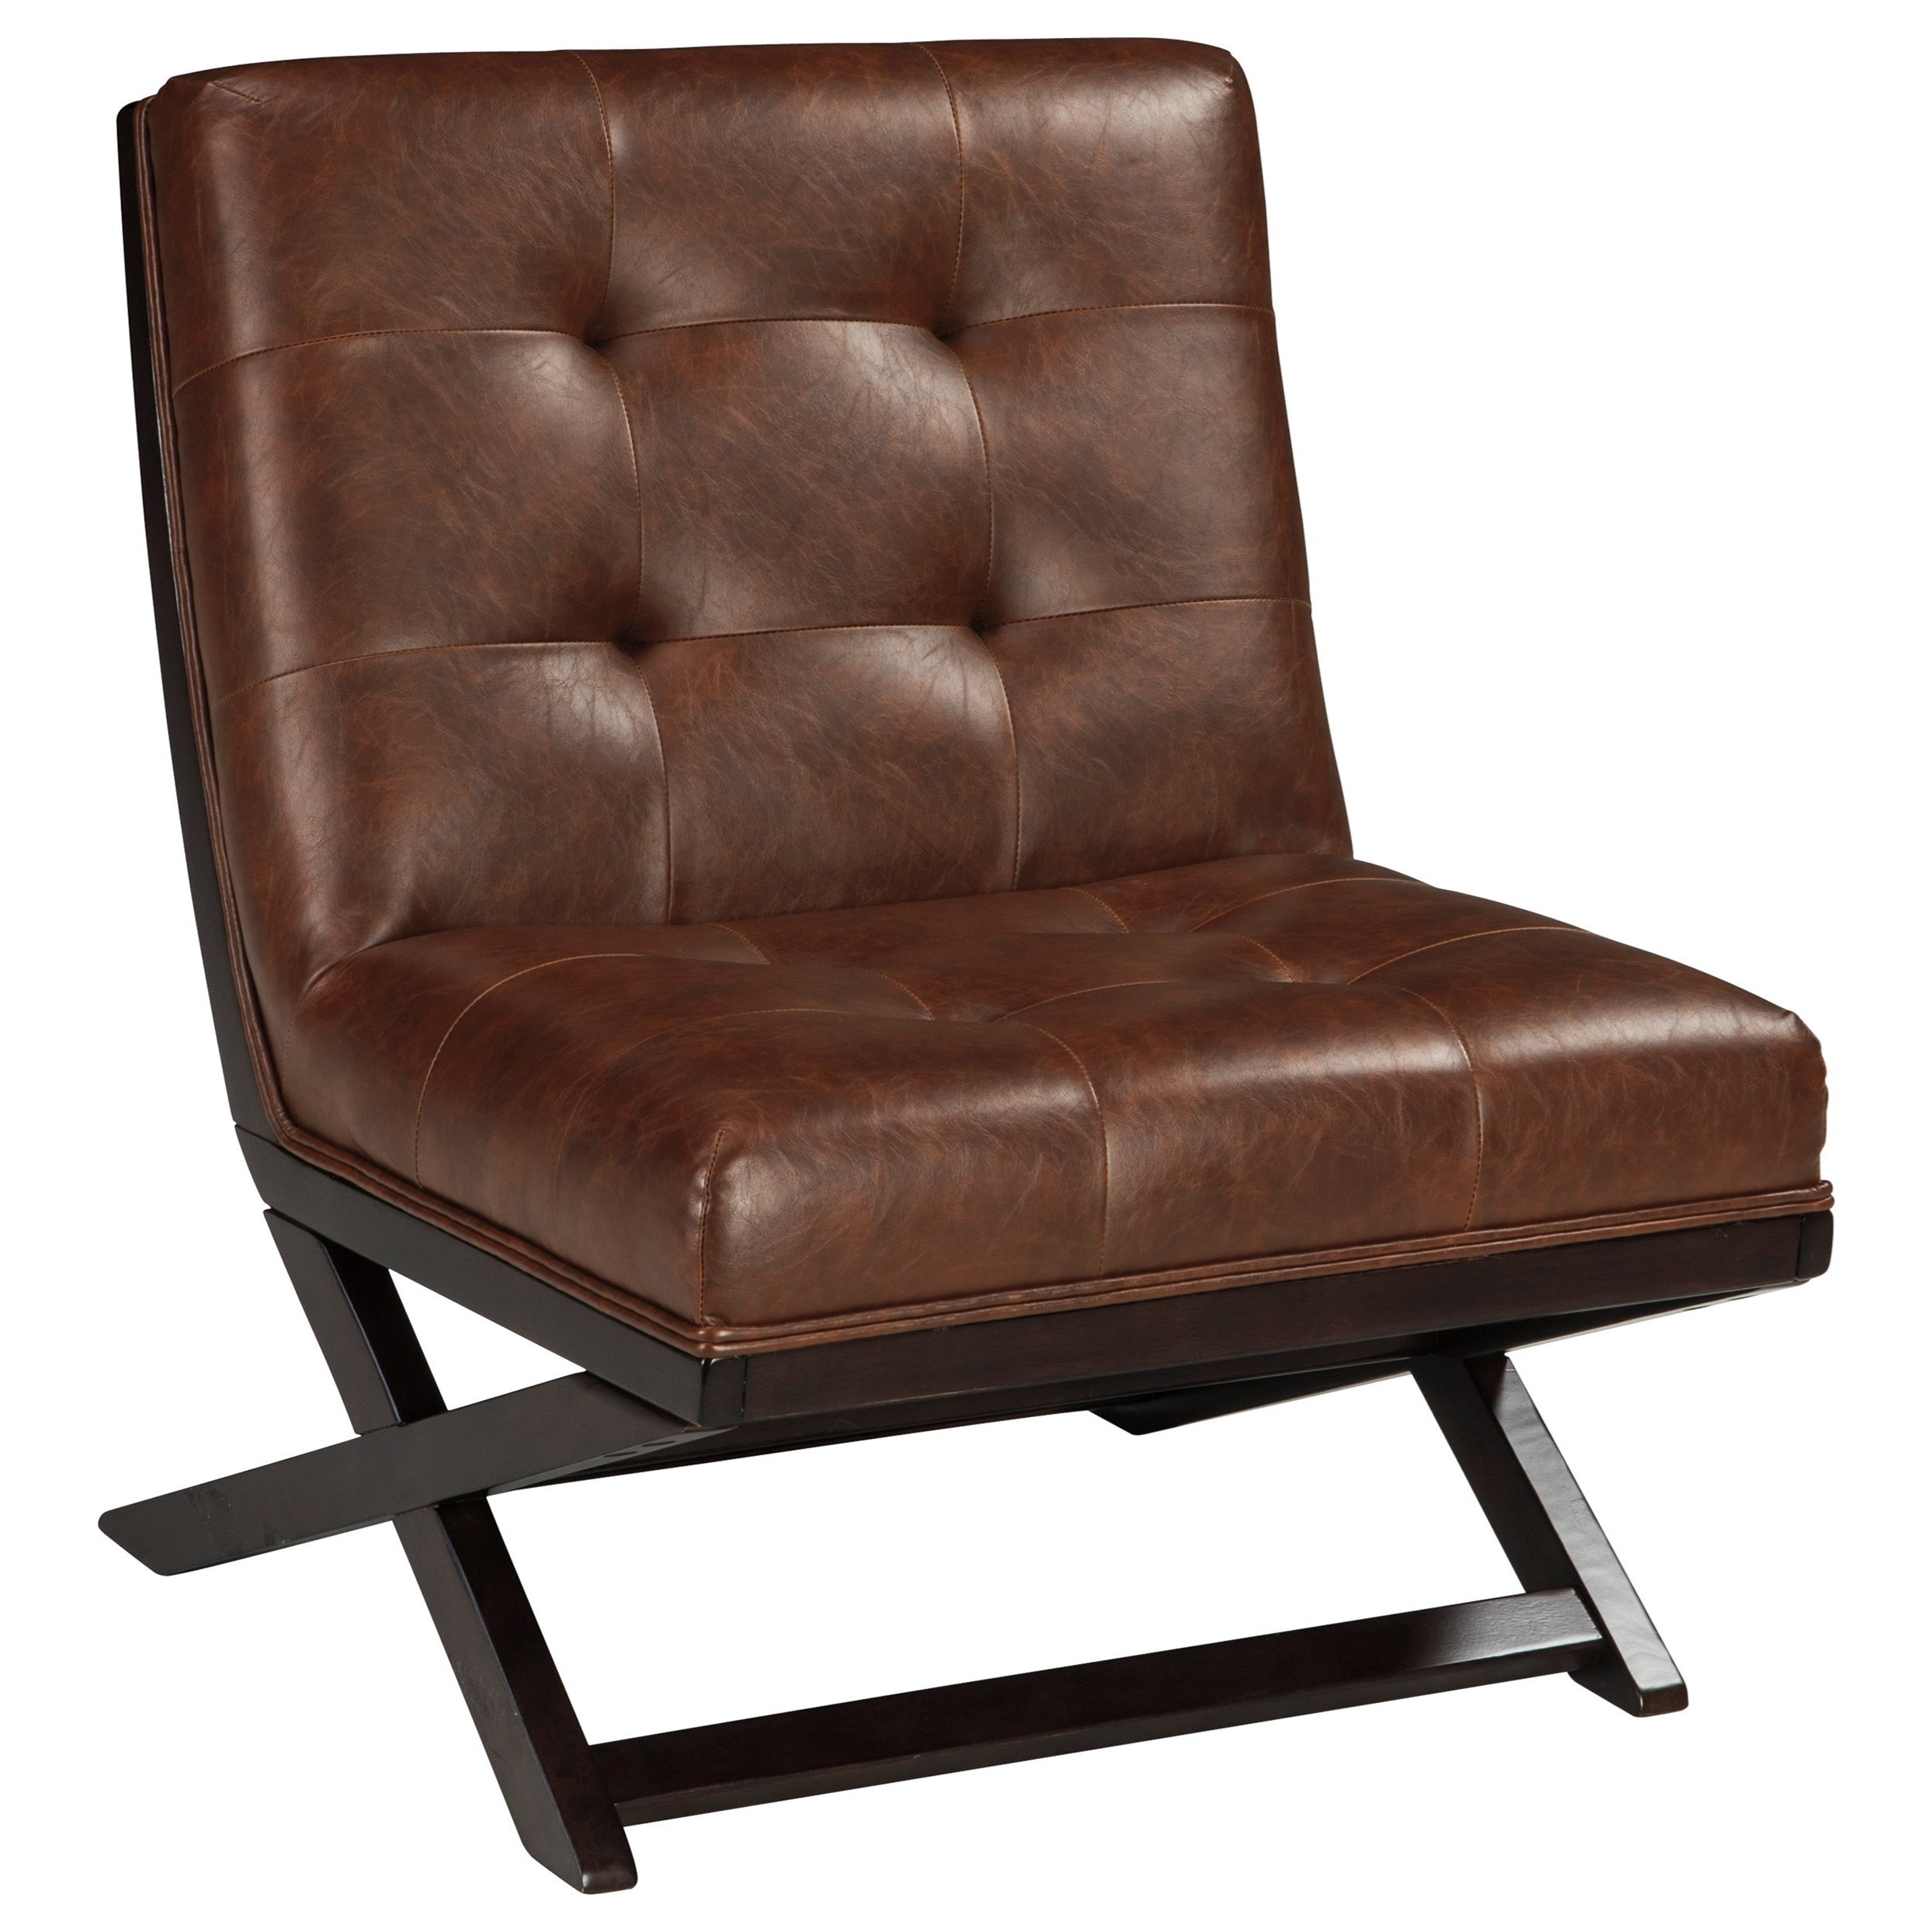 Signature Design By Ashley SidewinderAccent Chair ...